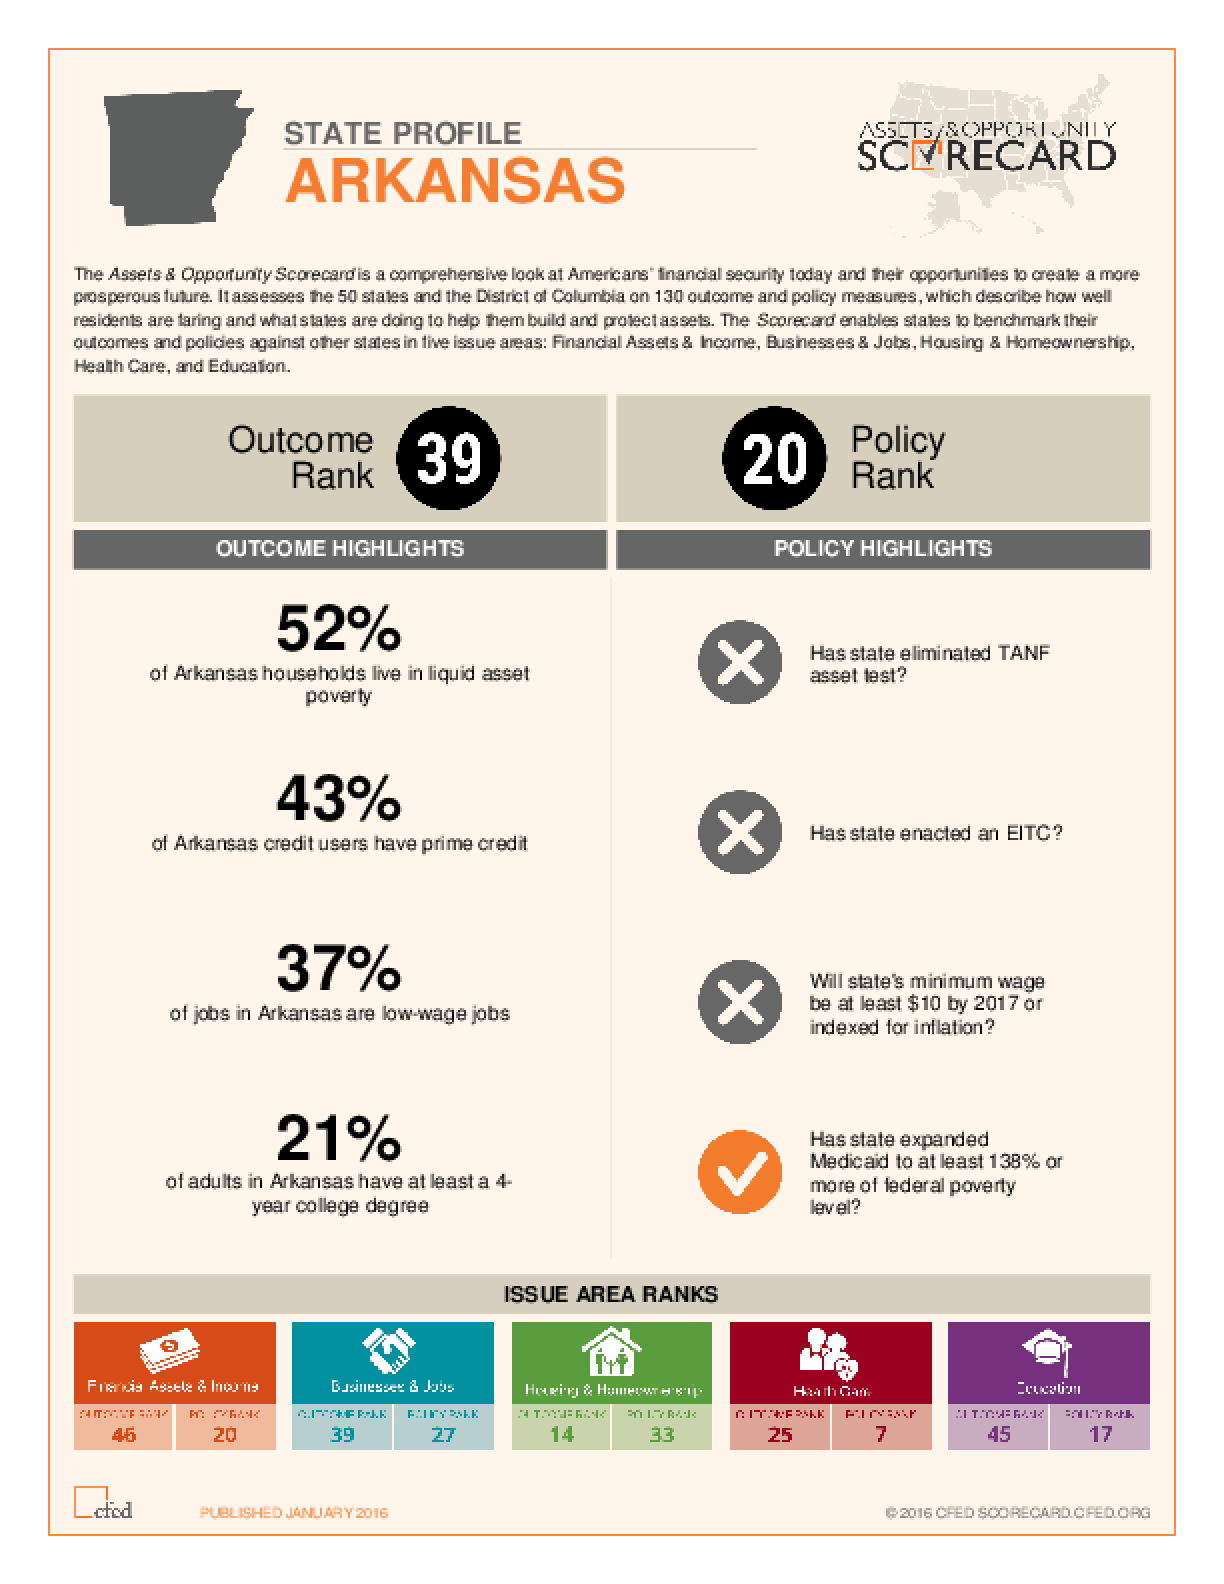 State Profile Arkansas: Assets and Opportunity Scorecard